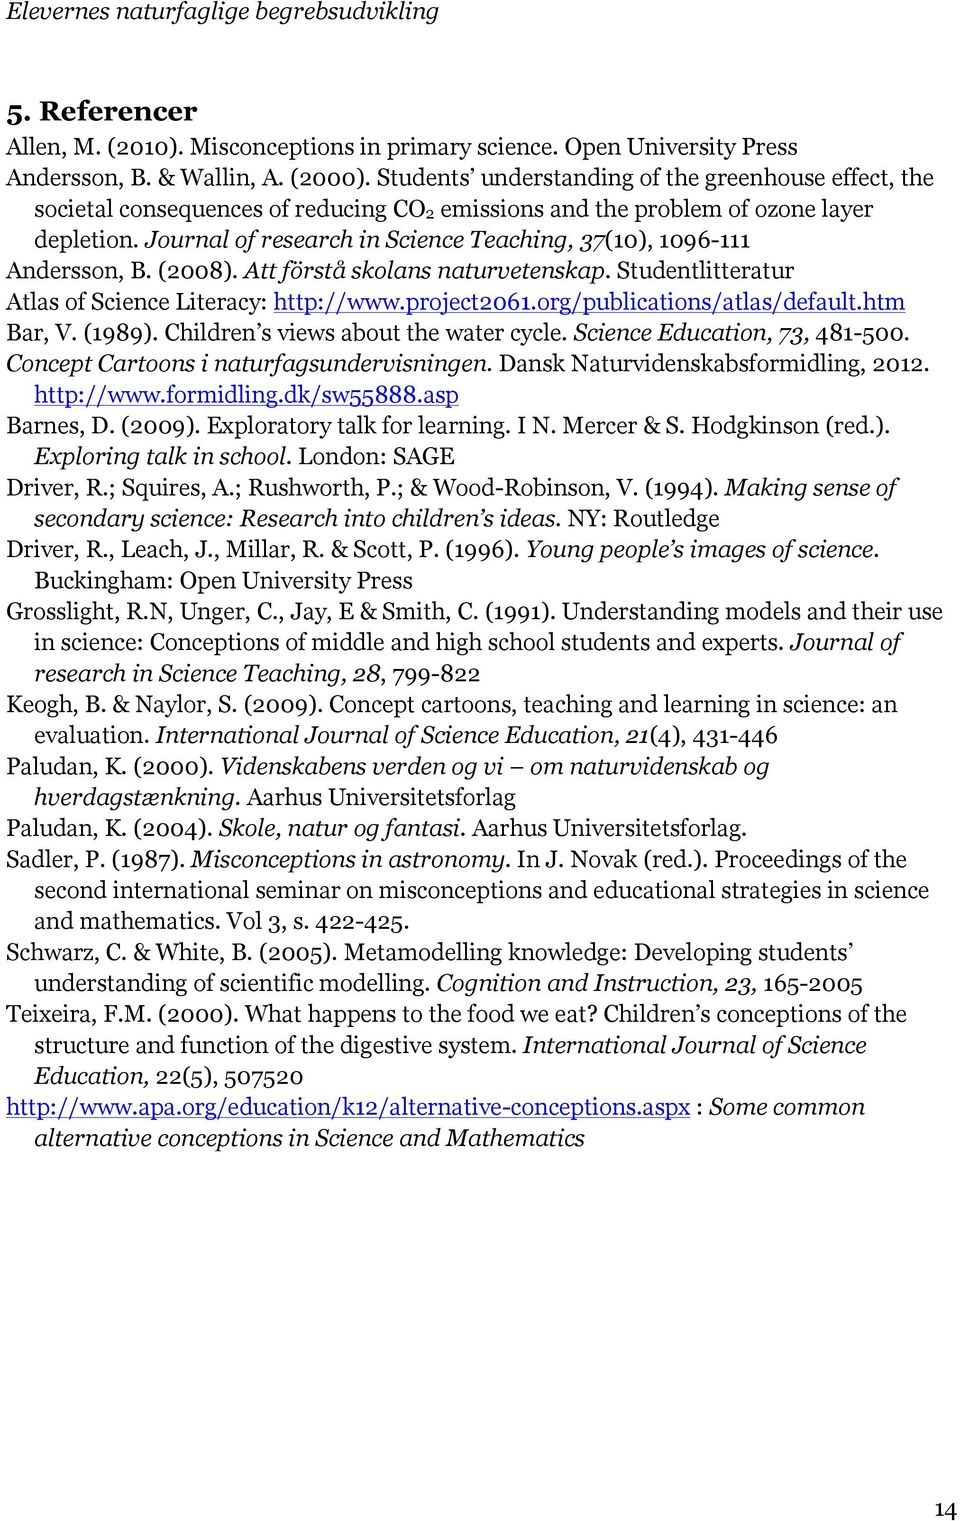 Journal of research in Science Teaching, 37(10), 1096-111 Andersson, B. (2008). Att förstå skolans naturvetenskap. Studentlitteratur Atlas of Science Literacy: http://www.project2061.